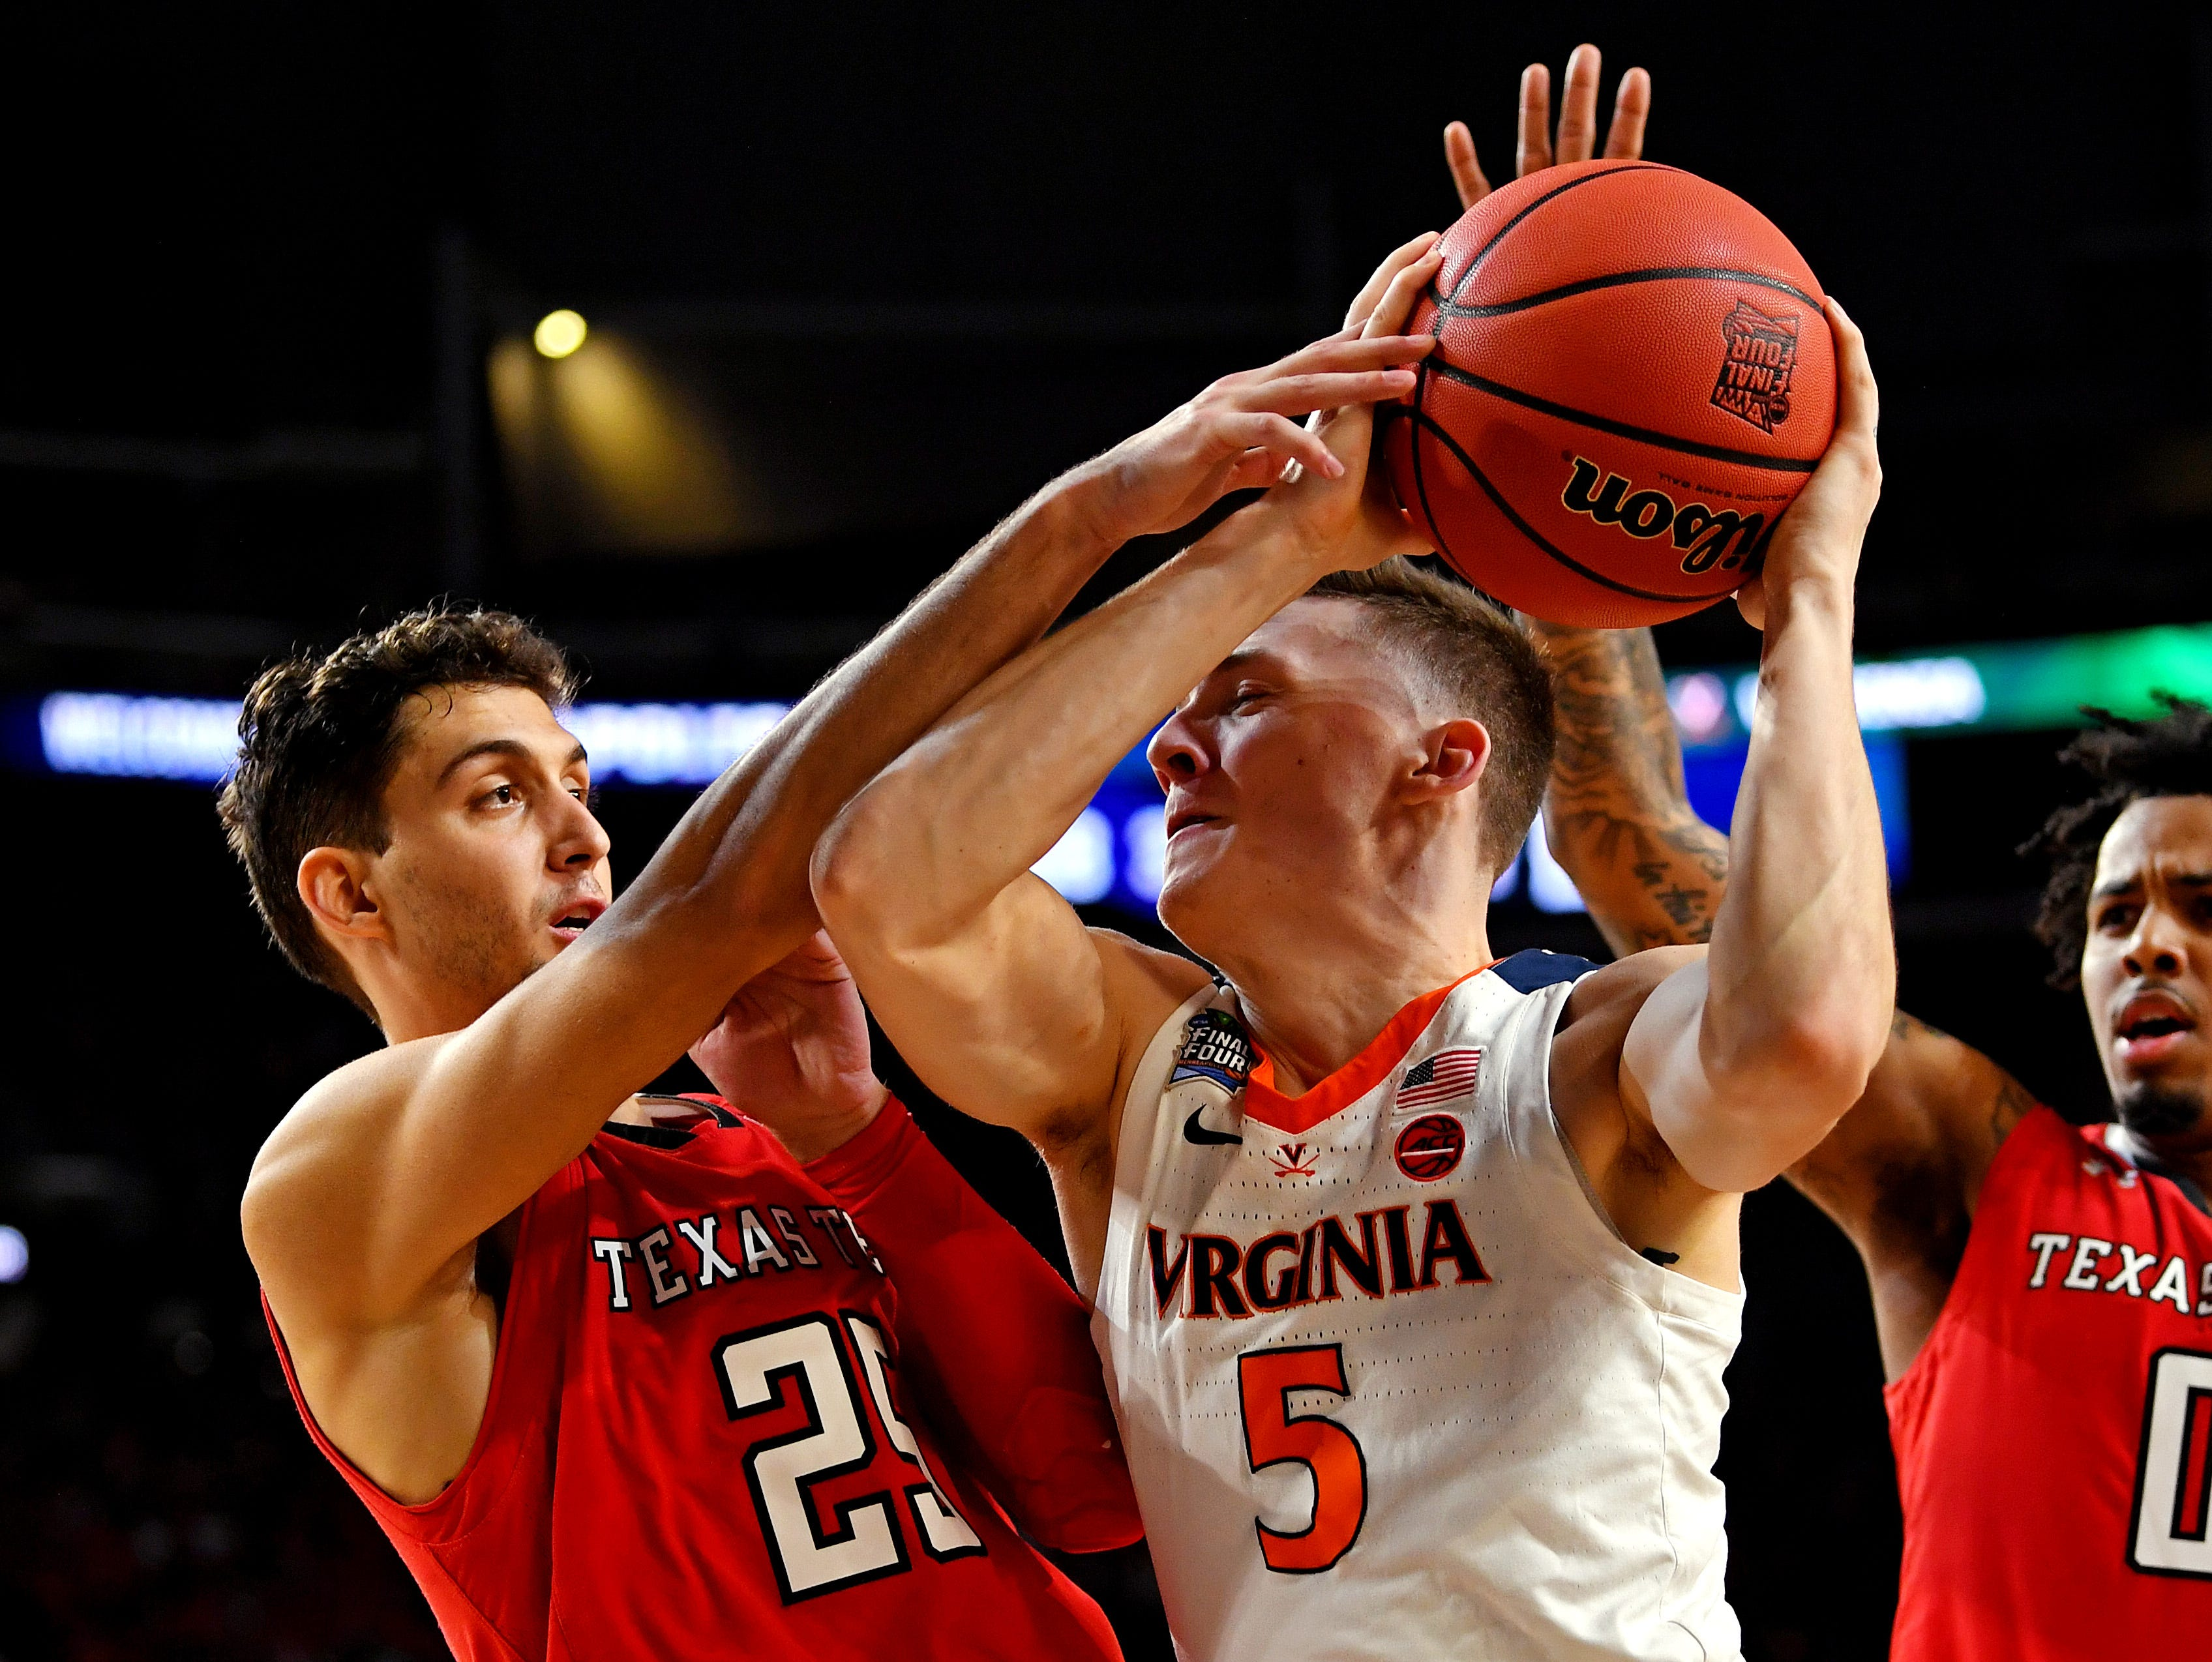 Apr 8, 2019; Minneapolis, MN, USA; Virginia Cavaliers guard Kyle Guy (5) drives to the basket against Texas Tech Red Raiders guard Davide Moretti (25) and guard Kyler Edwards (0) during the first half in the championship game of the 2019 men's Final Four at US Bank Stadium. Mandatory Credit: Bob Donnan-USA TODAY Sports